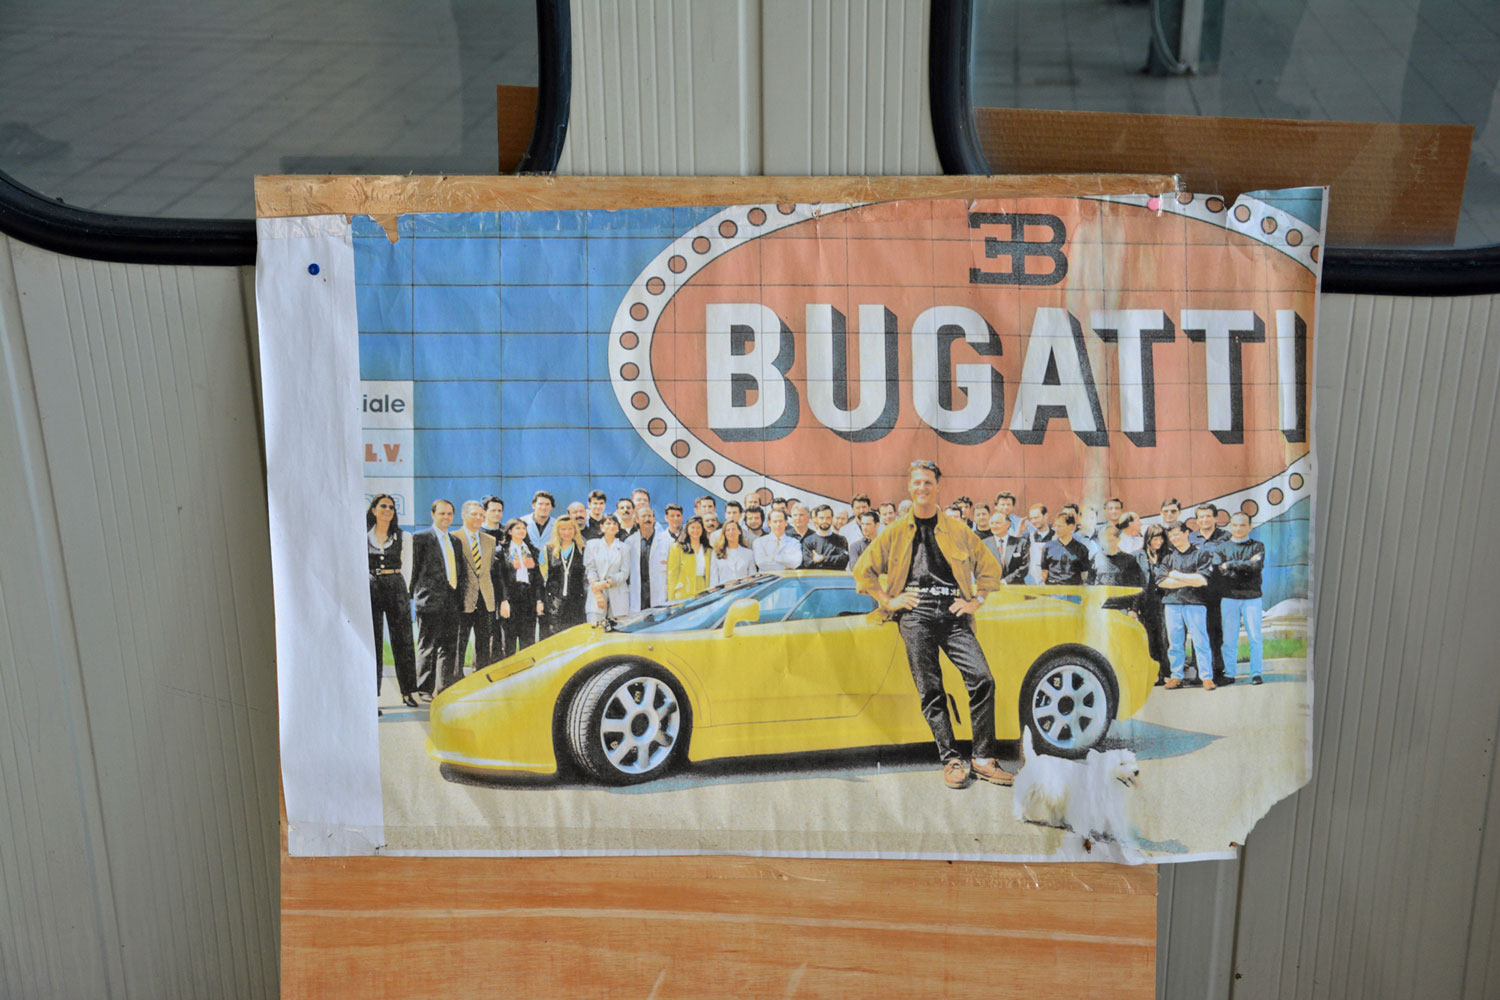 Bugatti advertisement in Campogalliano